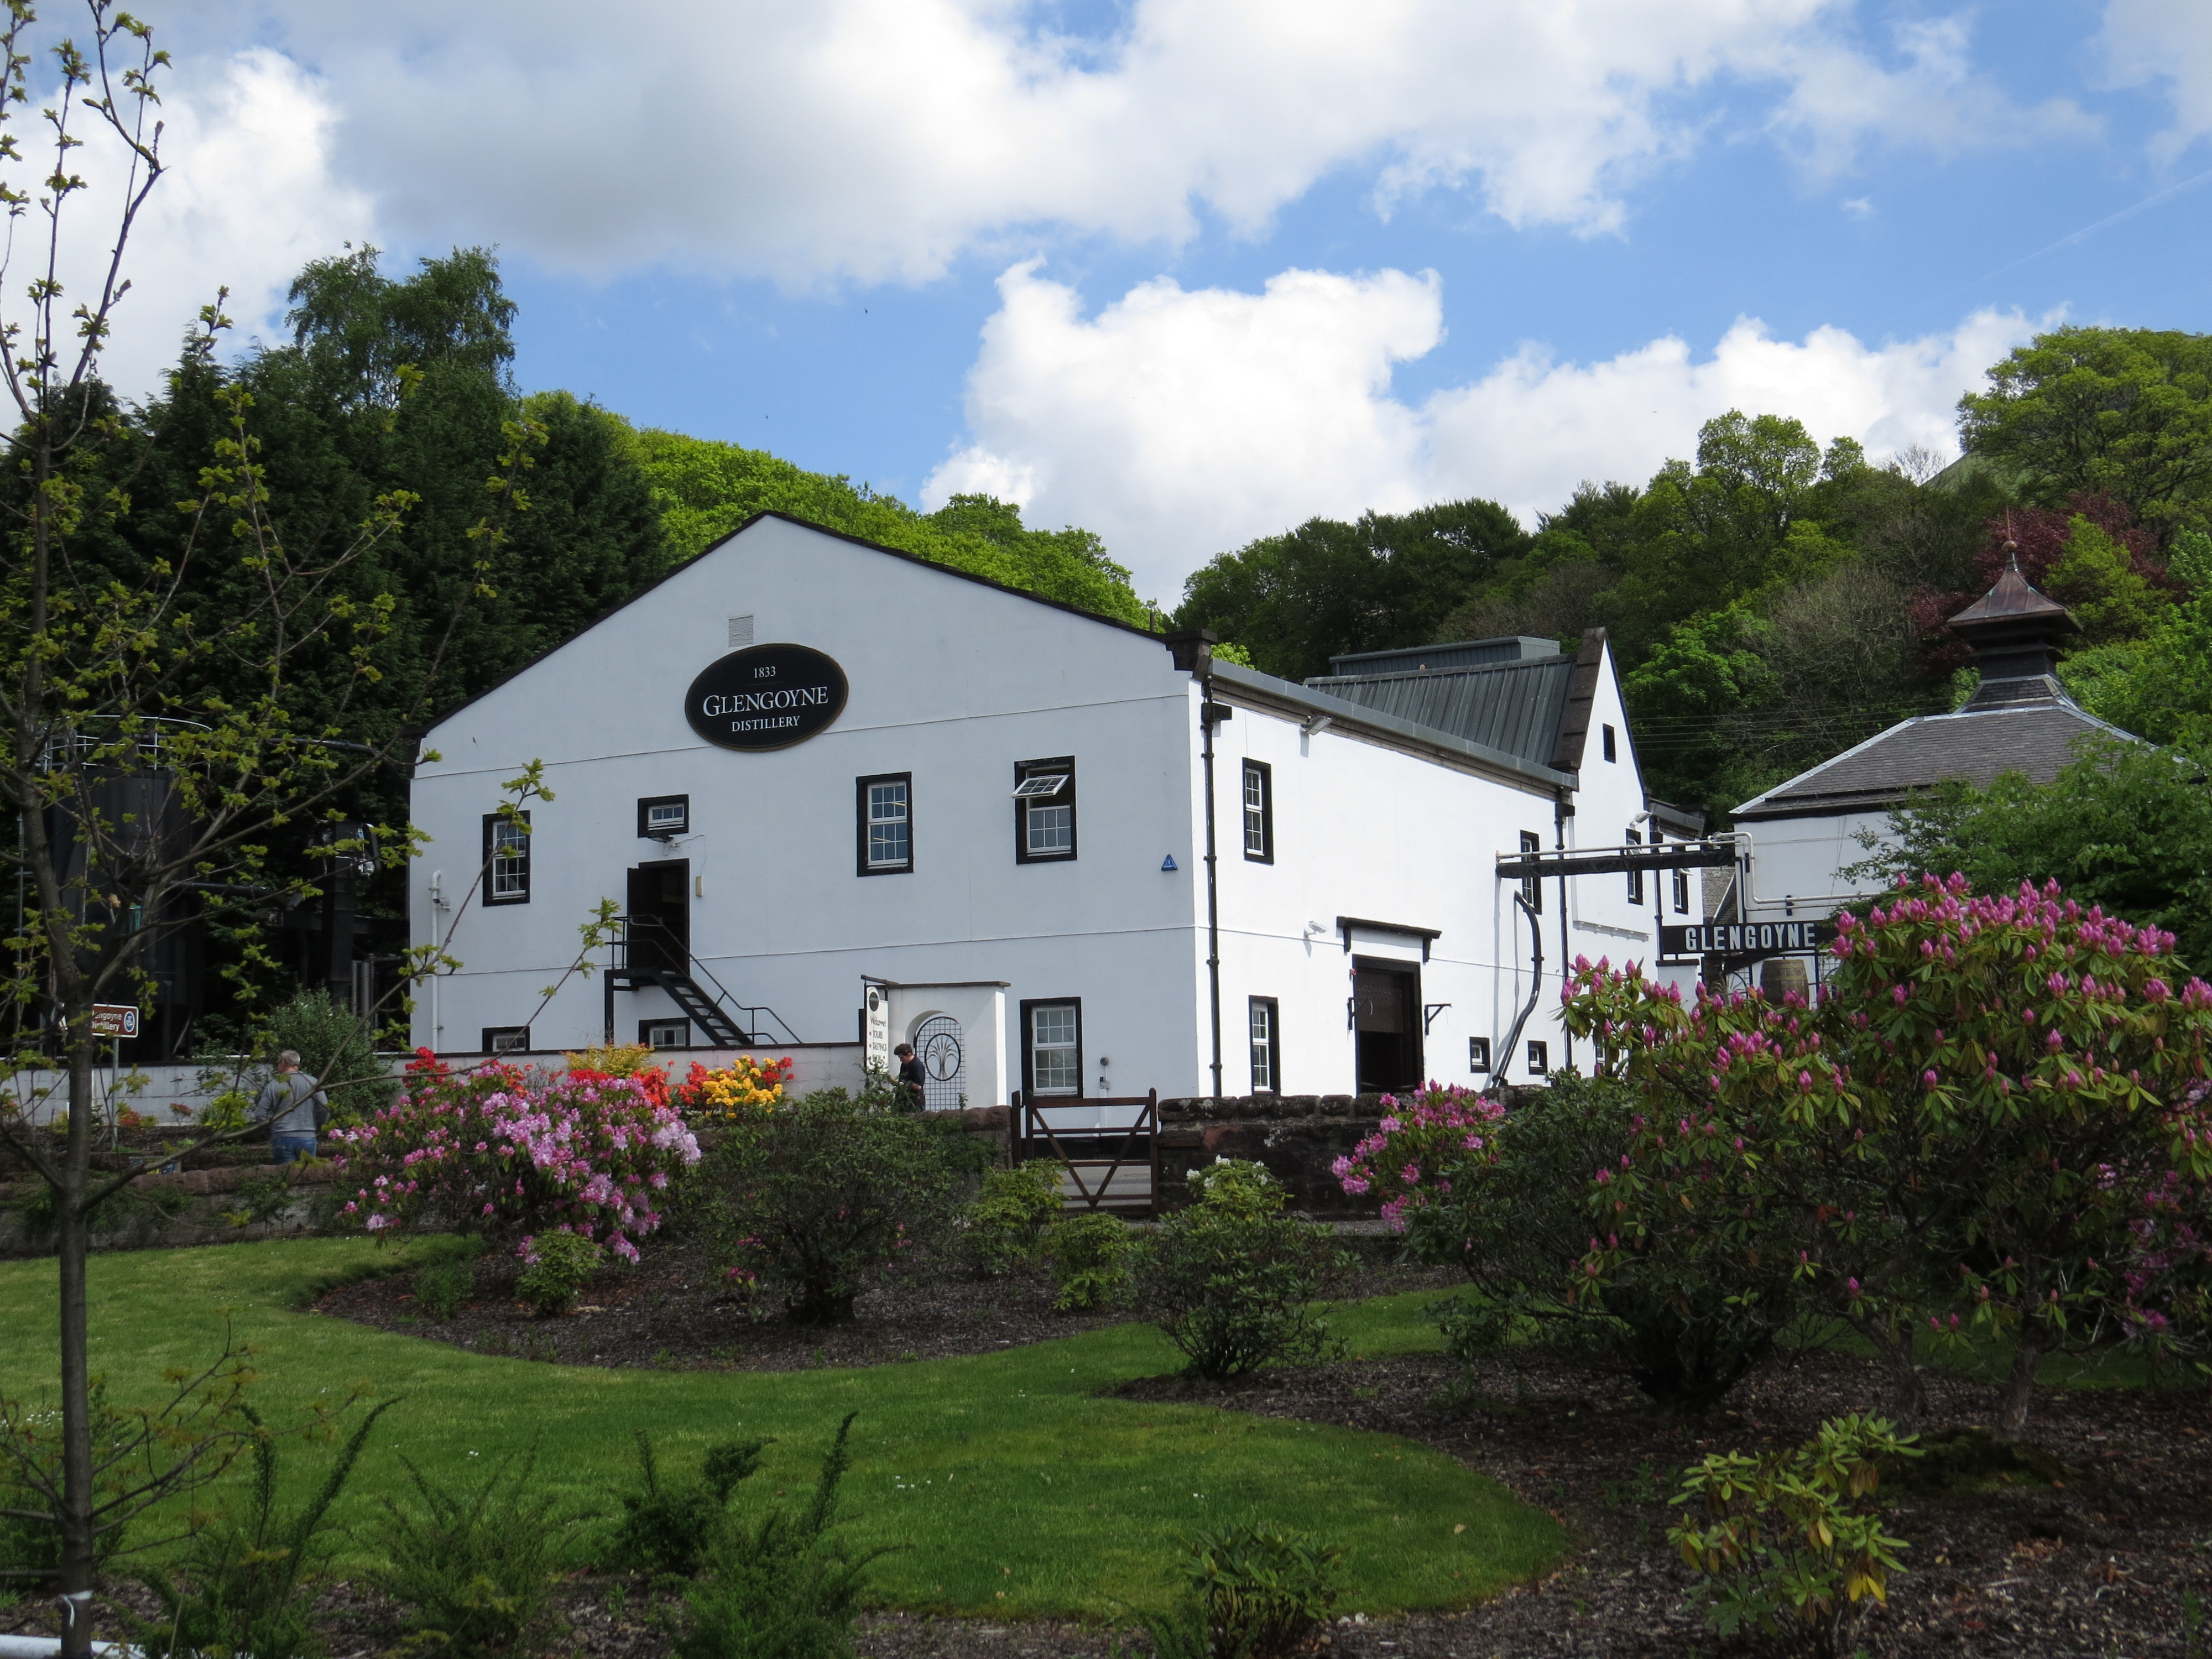 Glengoyne Distillery near Loch Lomond Tour